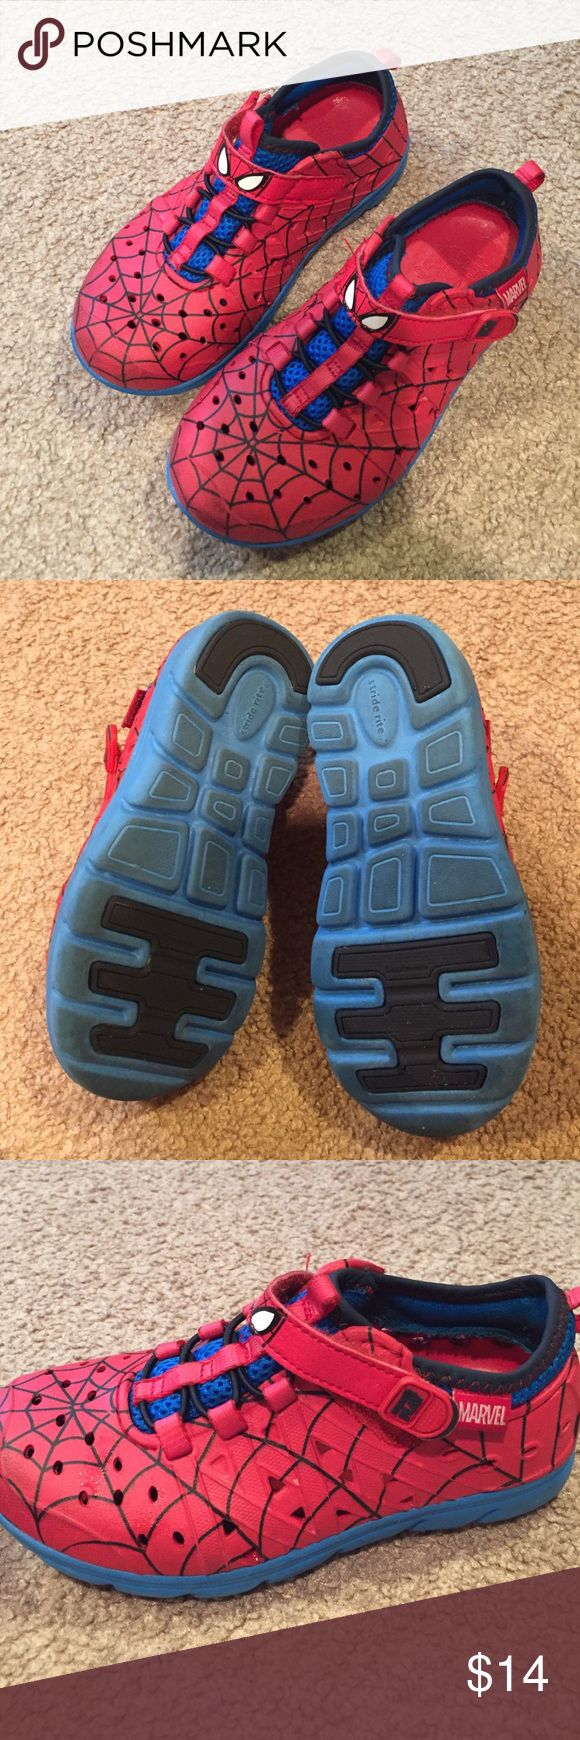 Stride Rite Phibians Marvels Spider man Phibians! Only worn a few times! Washable, perfect summer shoe! Can be worn in the water, yet stable enough for running at the playground! Wish my son didn't grow out of these! Stride Rite Shoes